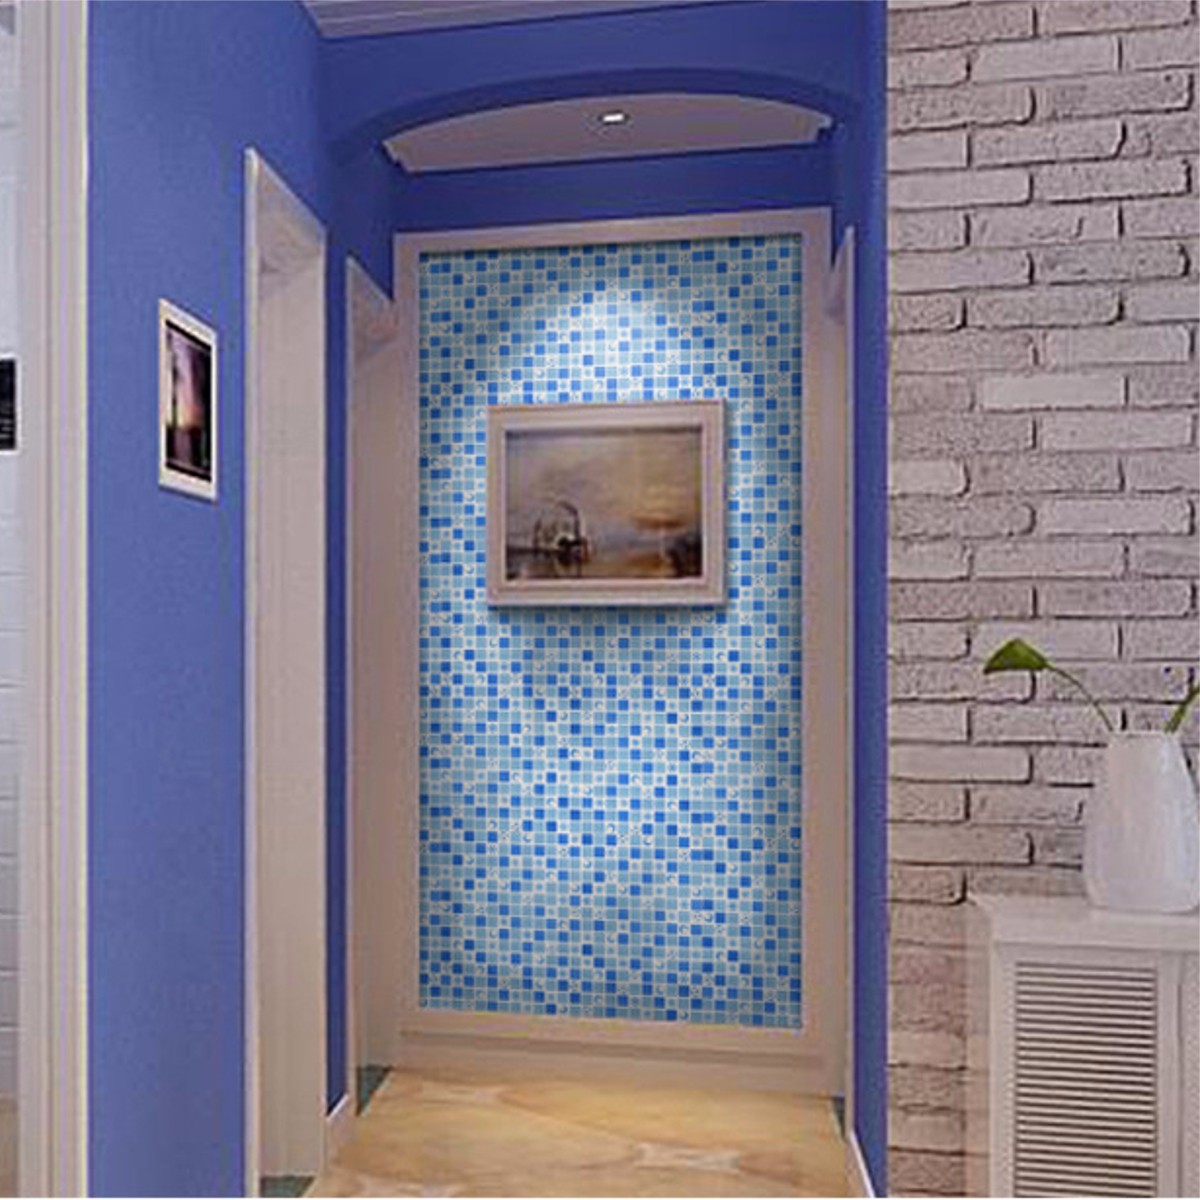 Waterproof crystal 3d mosaic tiles wall sticker for for Mosaic bathroom decor